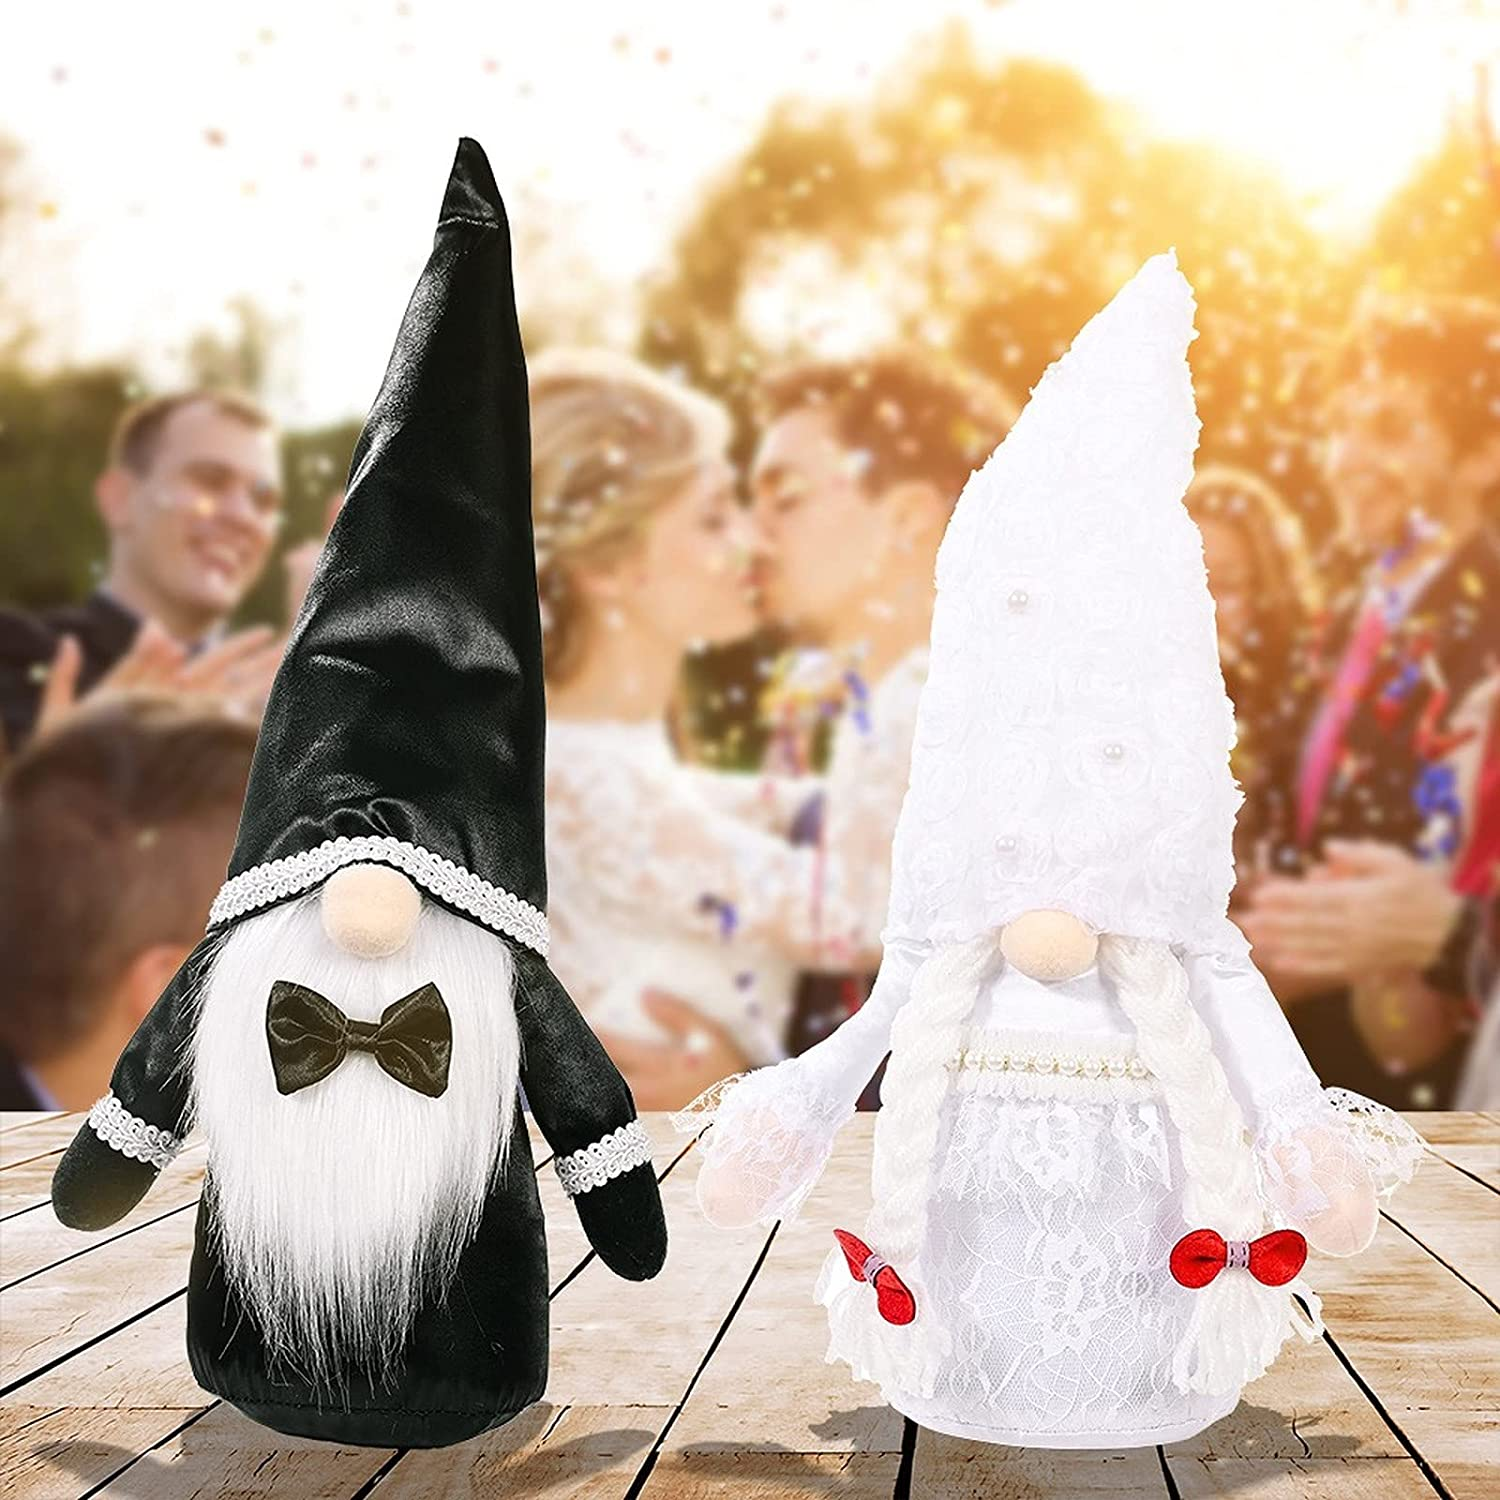 2pcs Wedding Gnome Bride Dress Groom Suits Decoration Plush Faceless Collectible Doll Gift Figurine Engagement Valentine's Day Mascot Souvenir Home Party Kitchen Tiered Tray Elf Tomte Swedish Dwarf